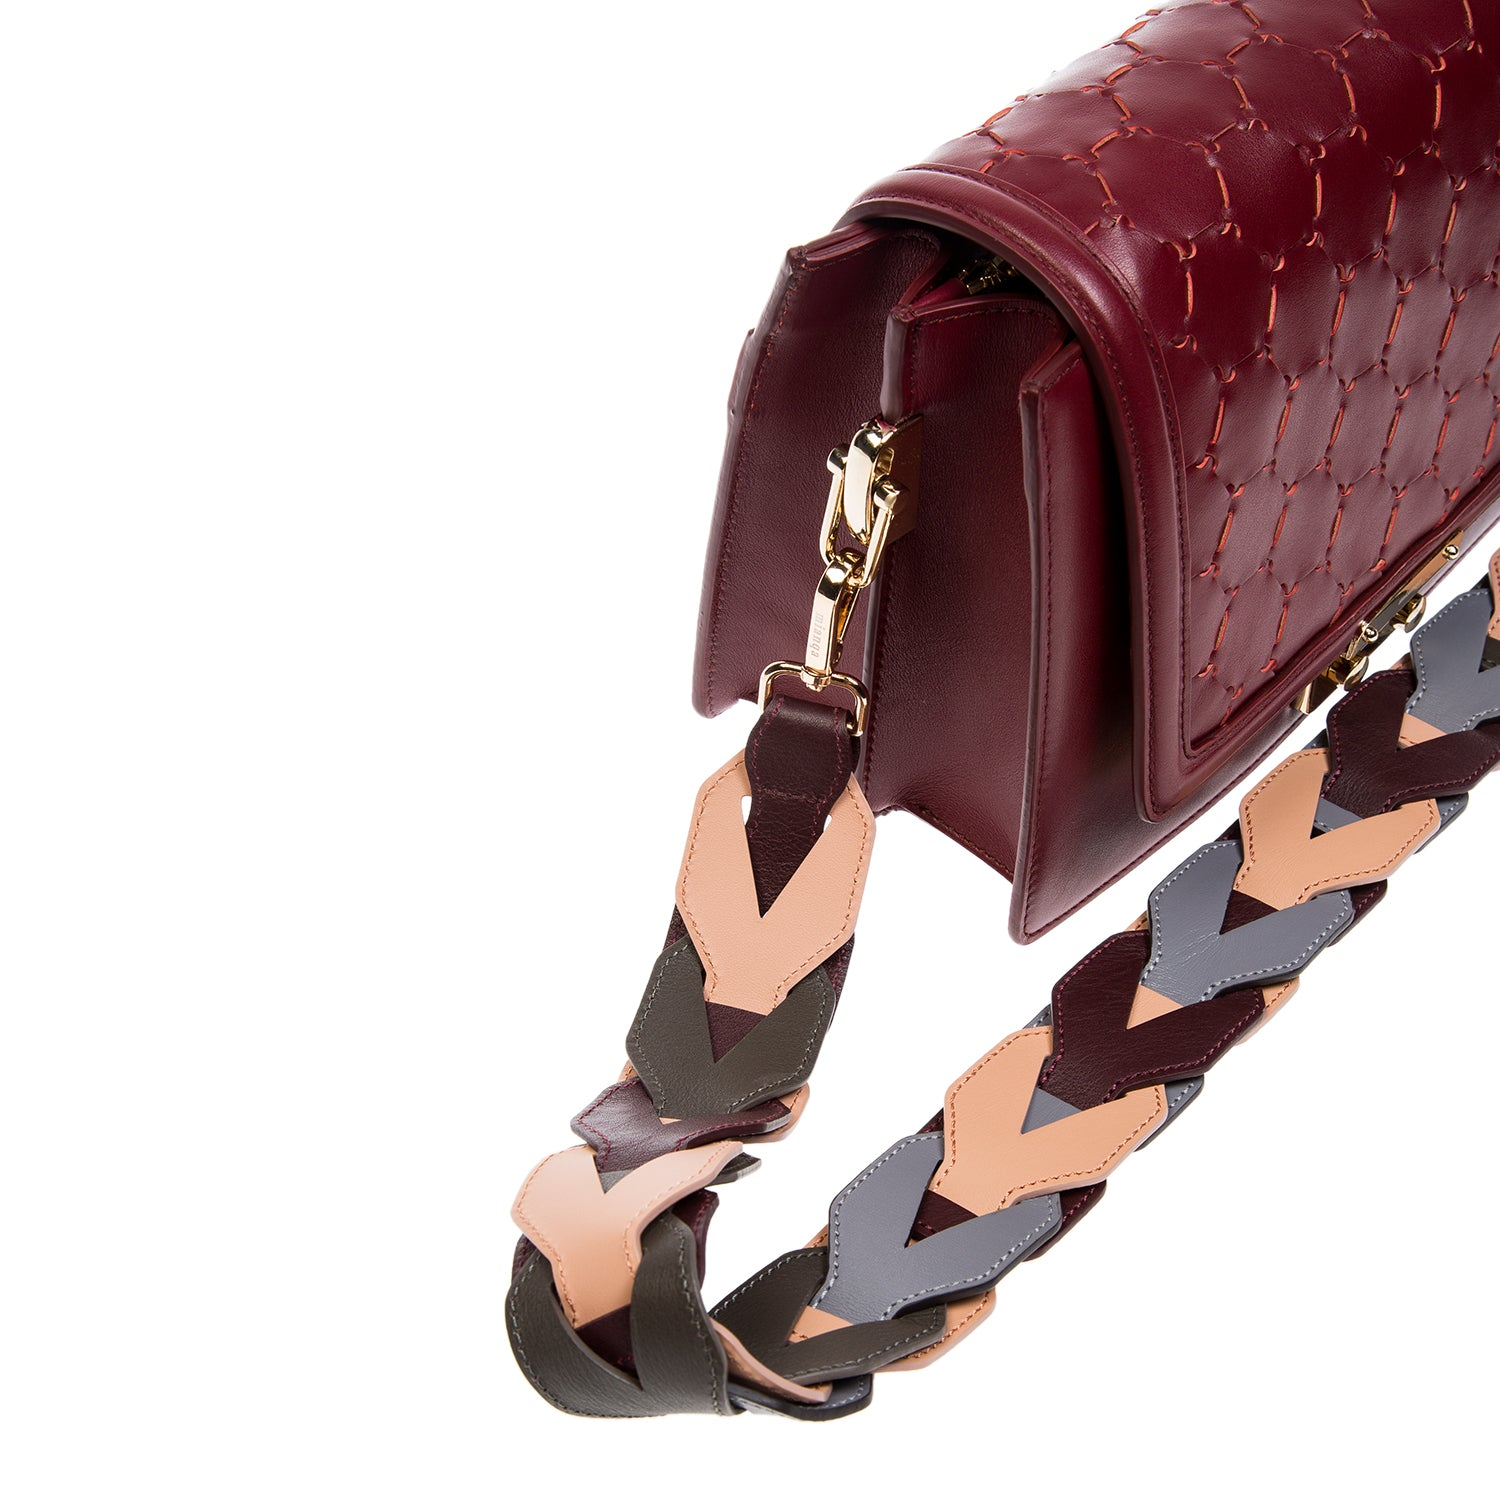 Woven Leather Shoulder Strap Violet Blush Bordeaux